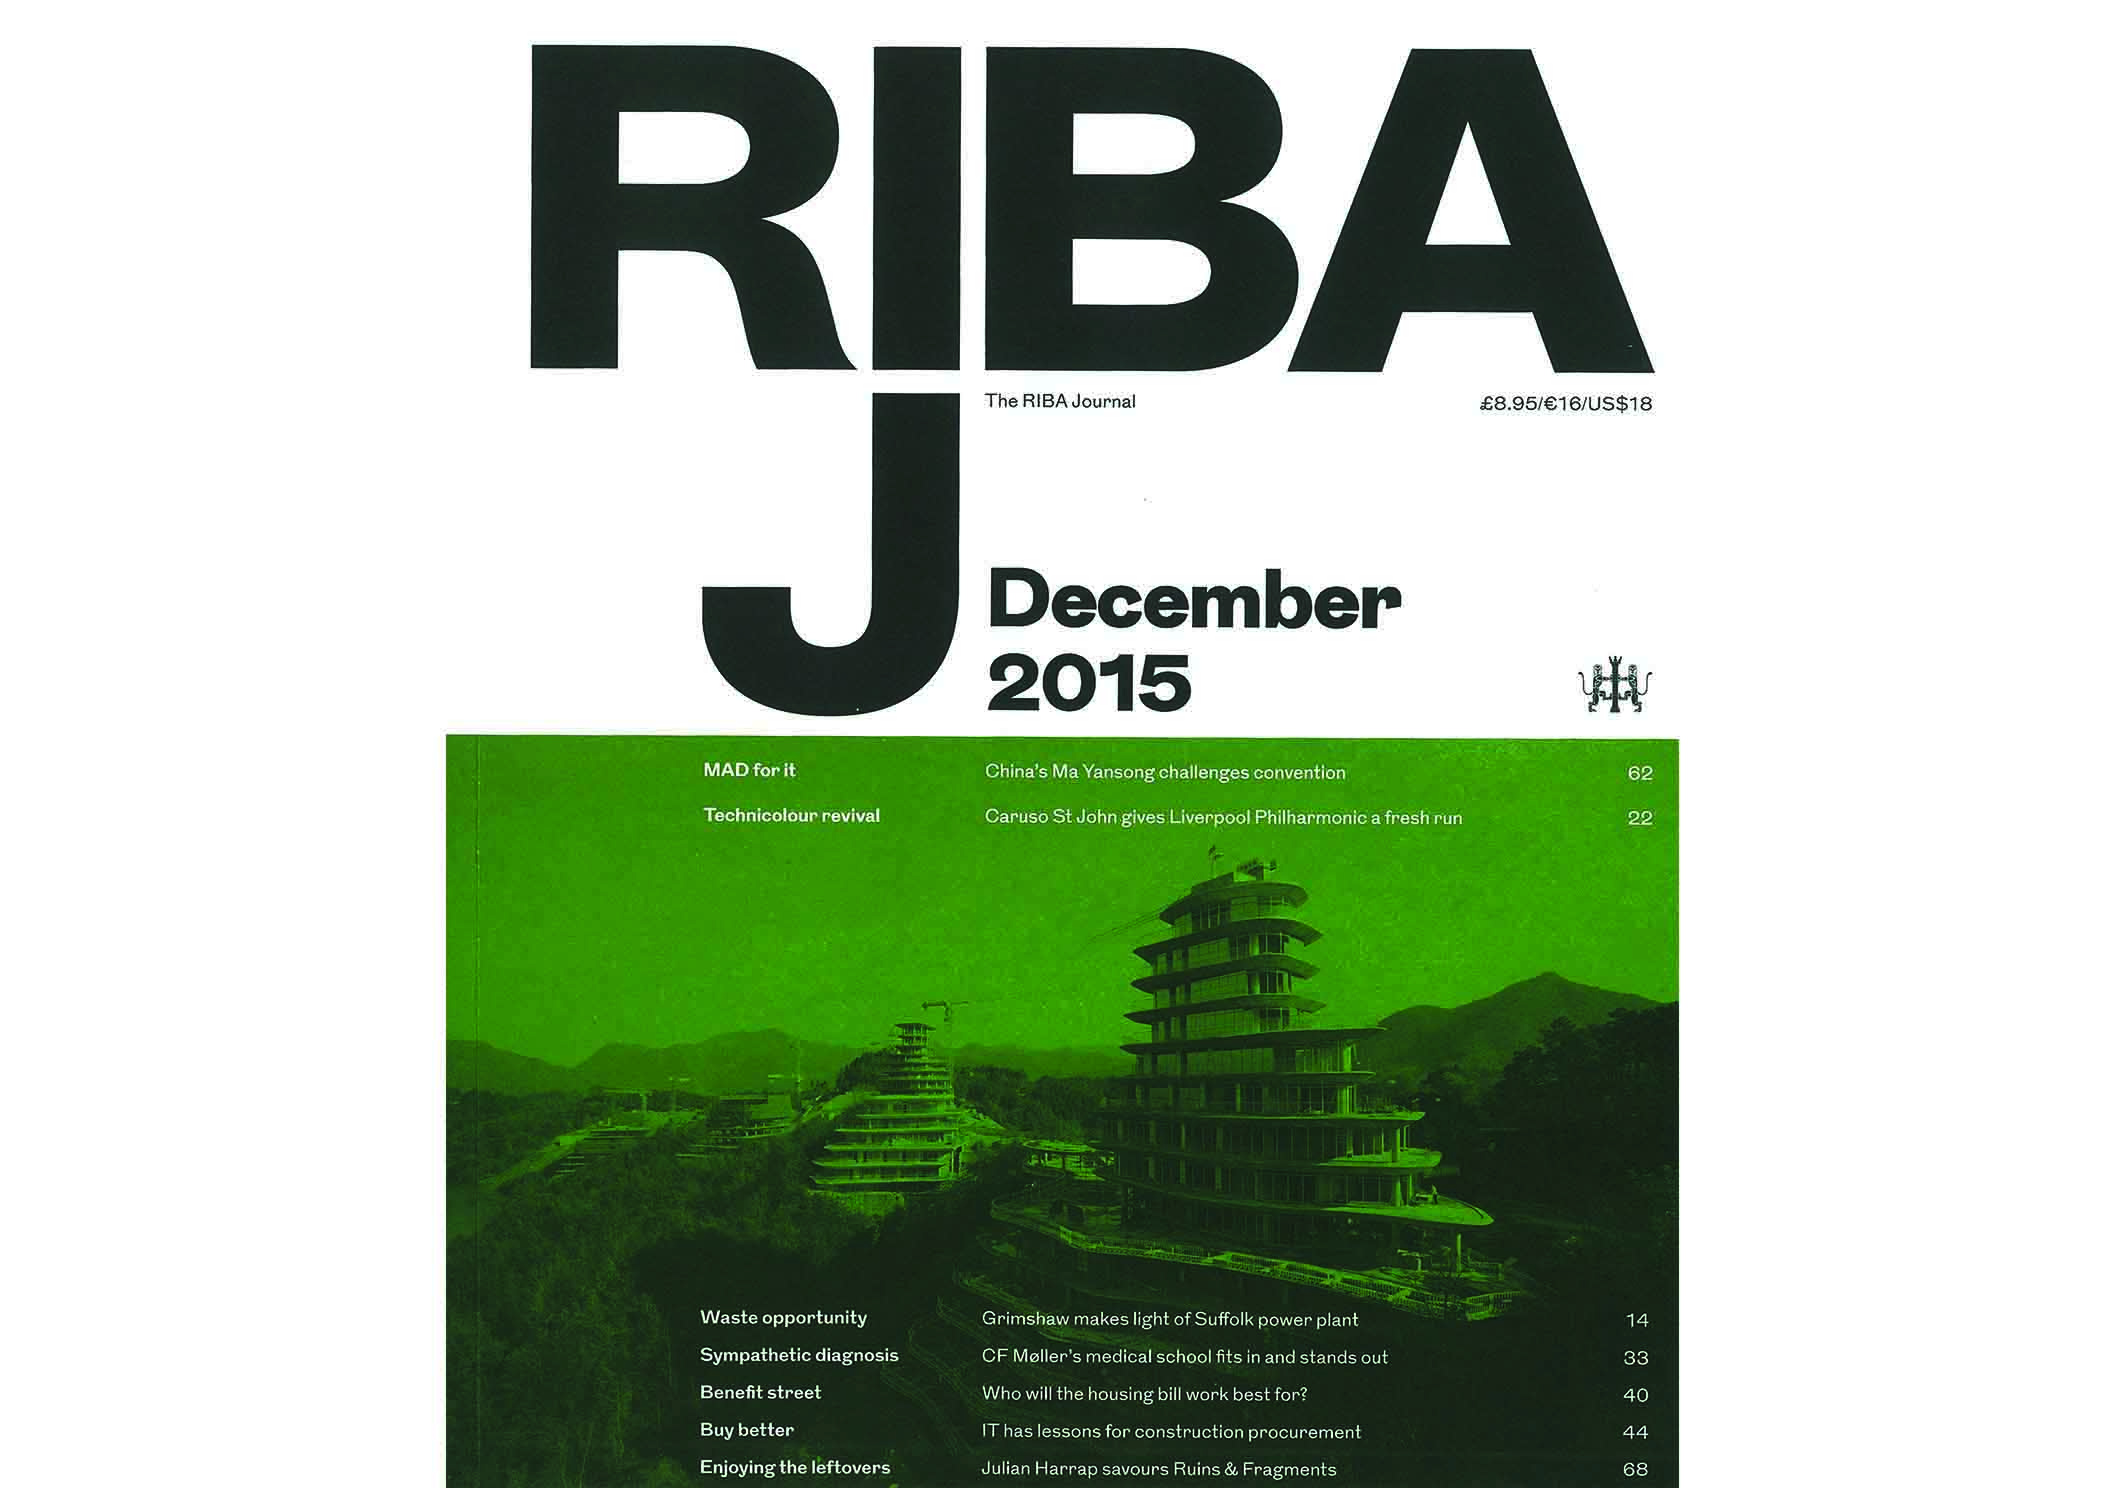 riba-journal-december-2015_web